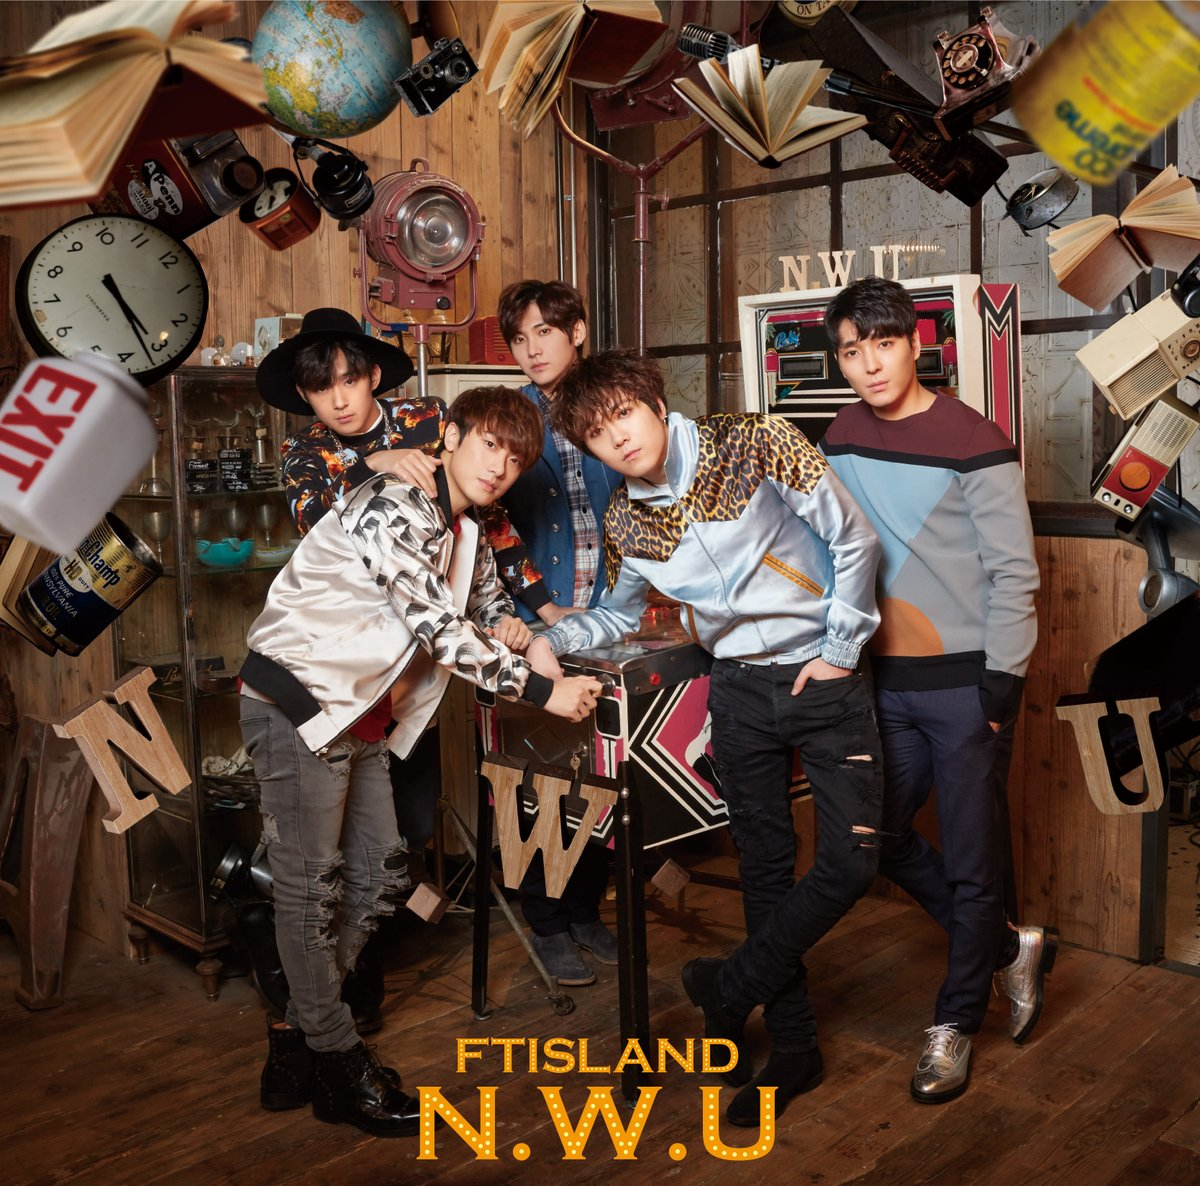 ftisland nwu album version primadonna